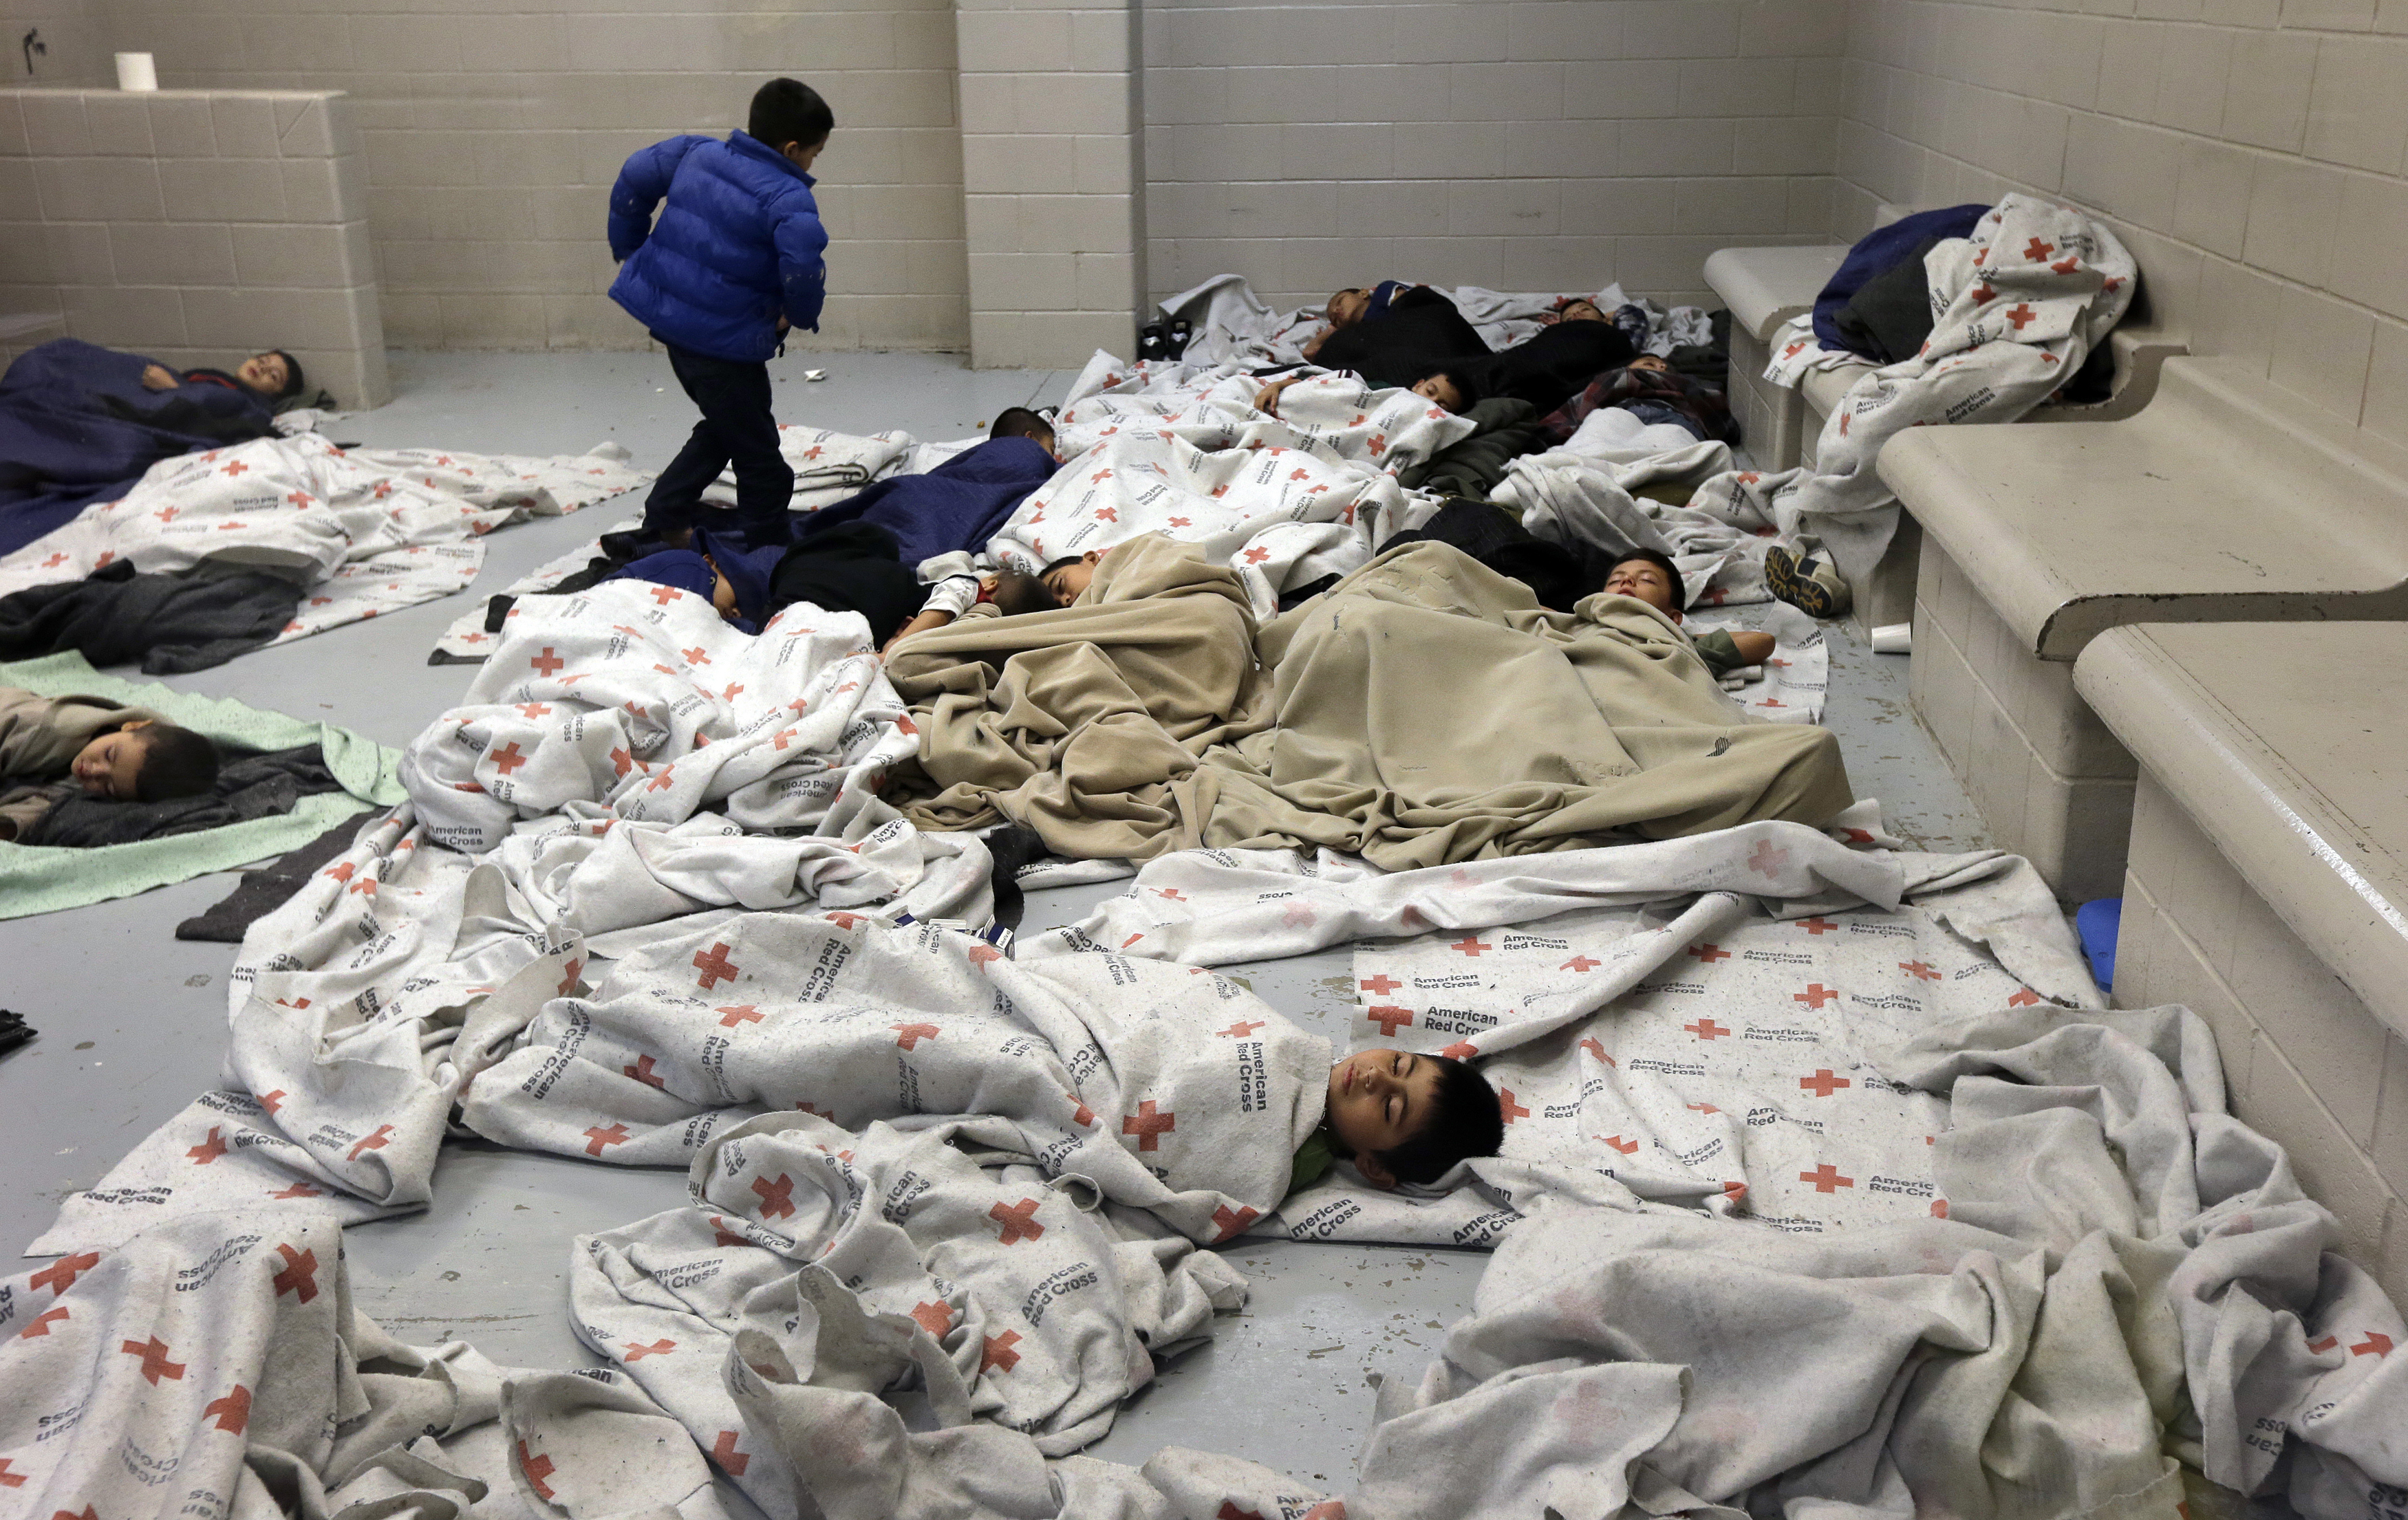 pemChild-detainees-sleep-in-a-holding-cell-at-a-US-Customs-and-Border-Protection-processing-facility-in-Brownsville-Texas.-ReutersEric-GayPoolemp